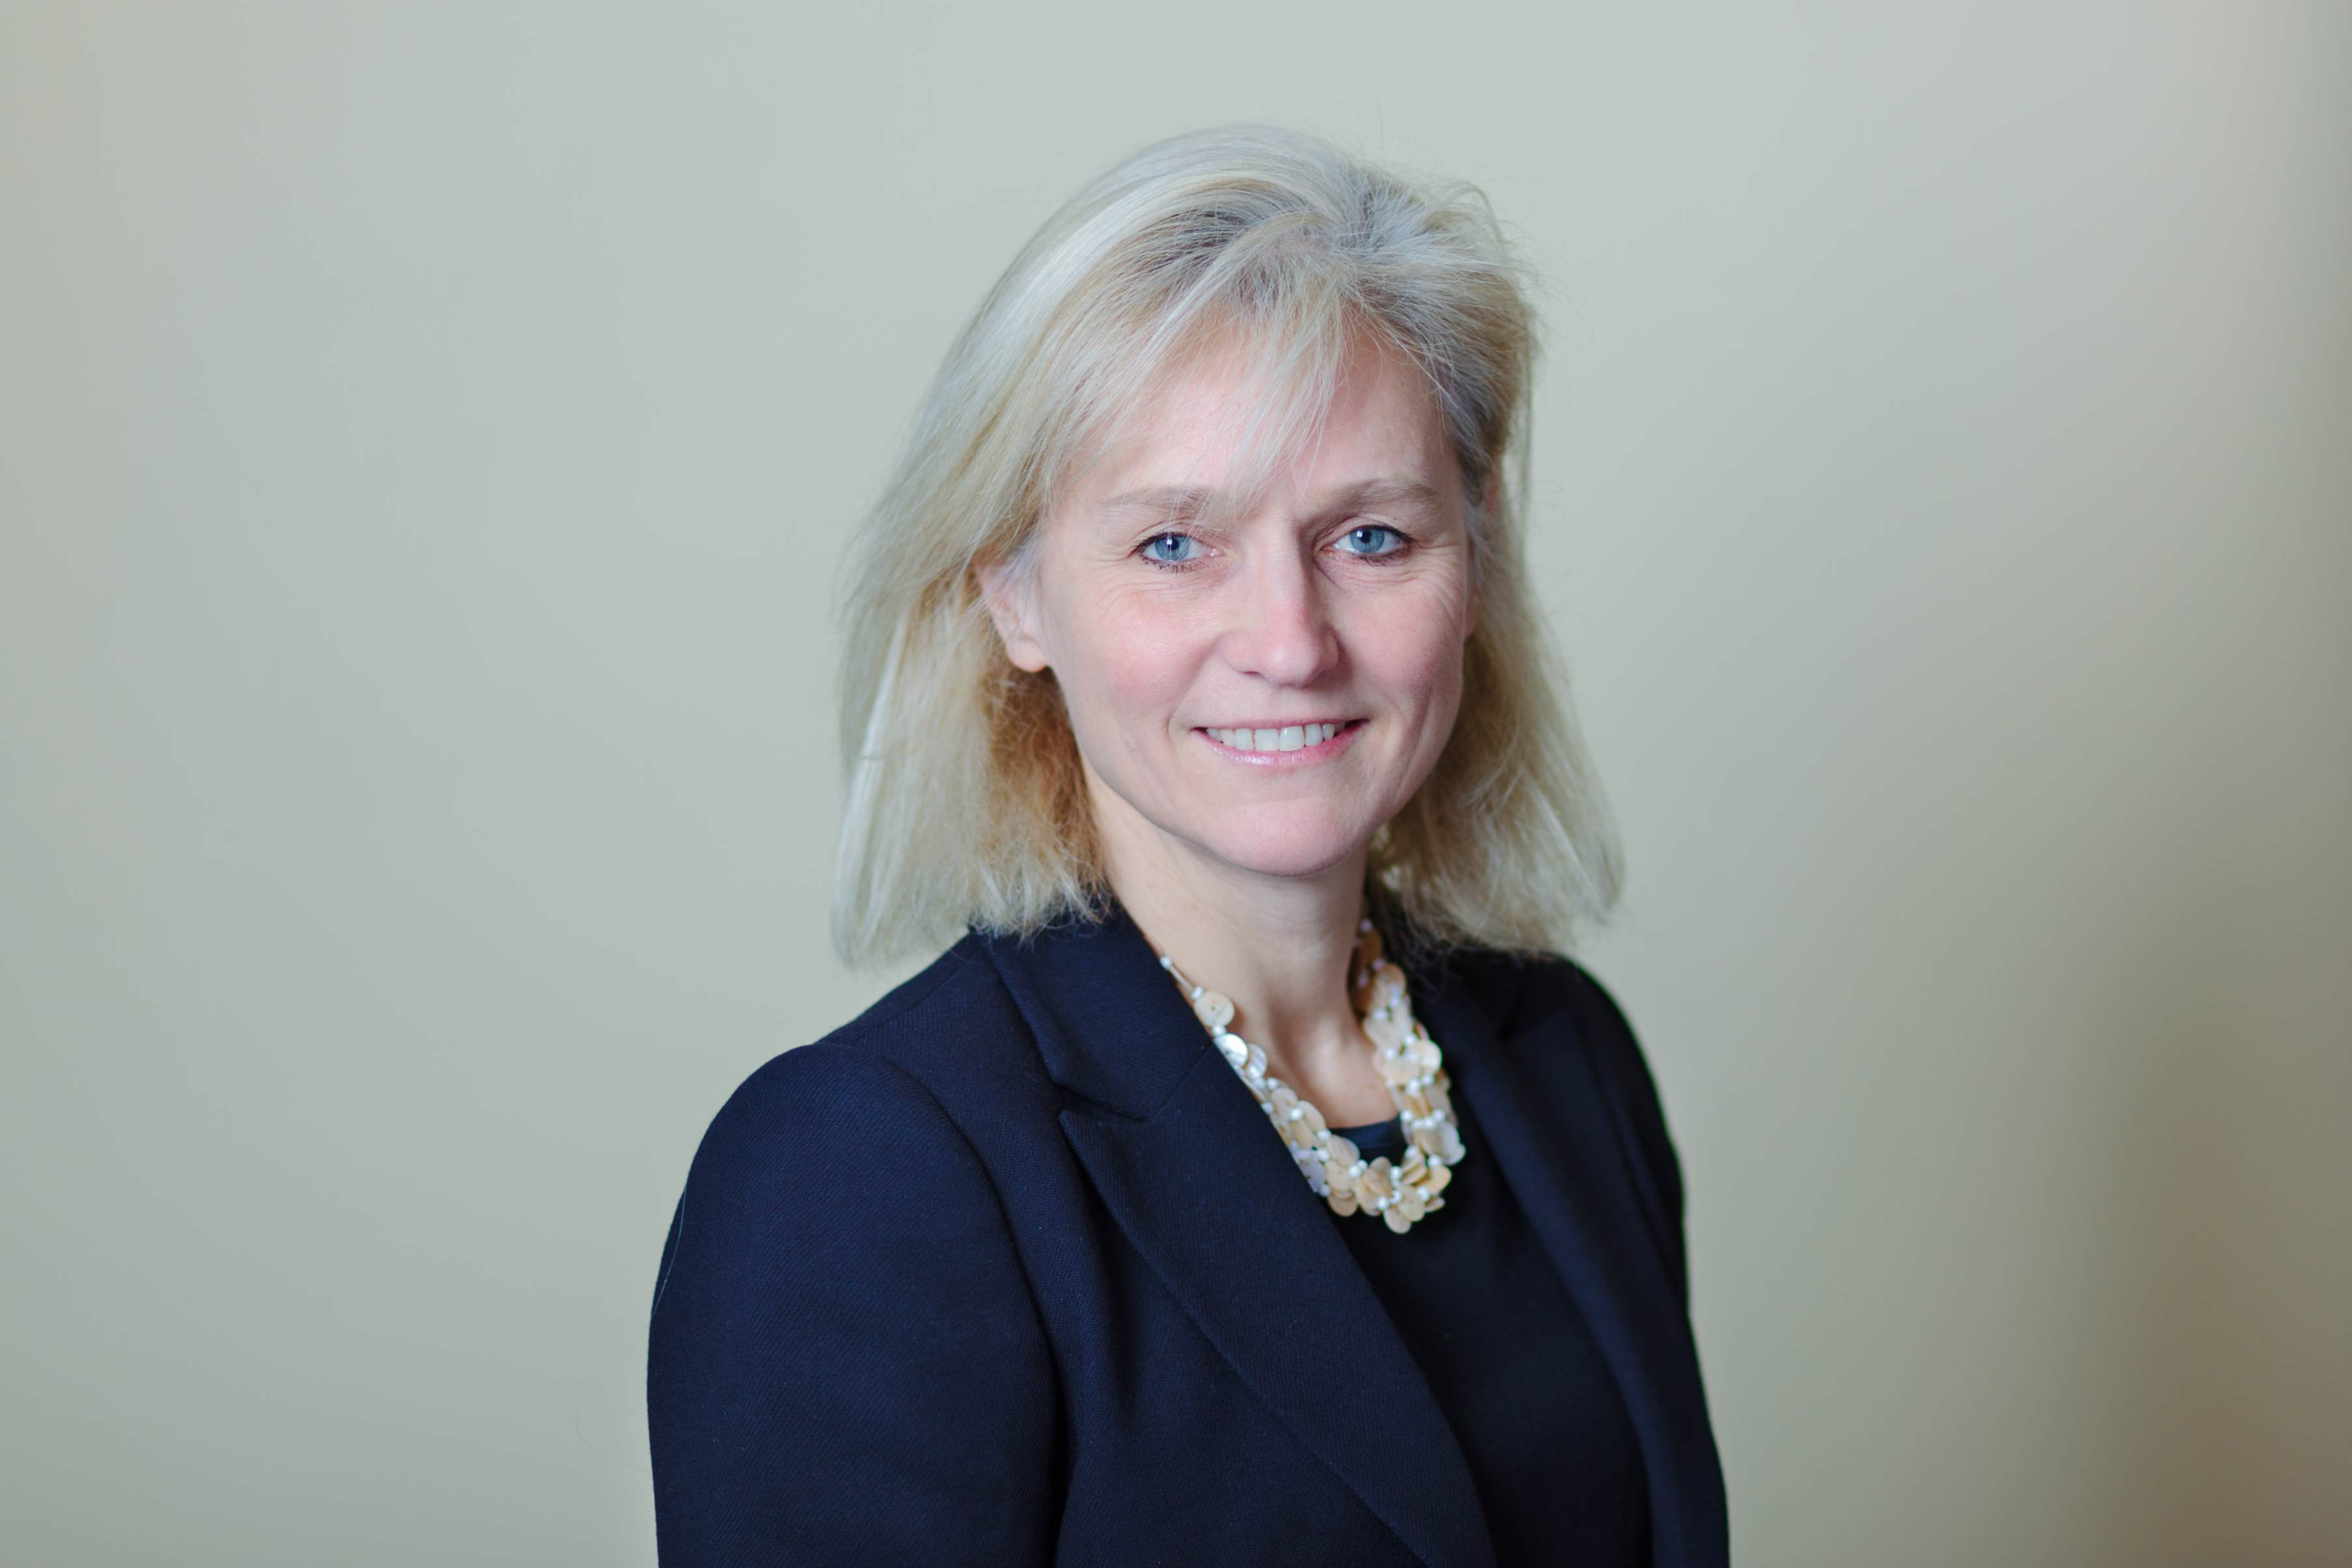 Helena Ganczakowski, Non-Executive Director